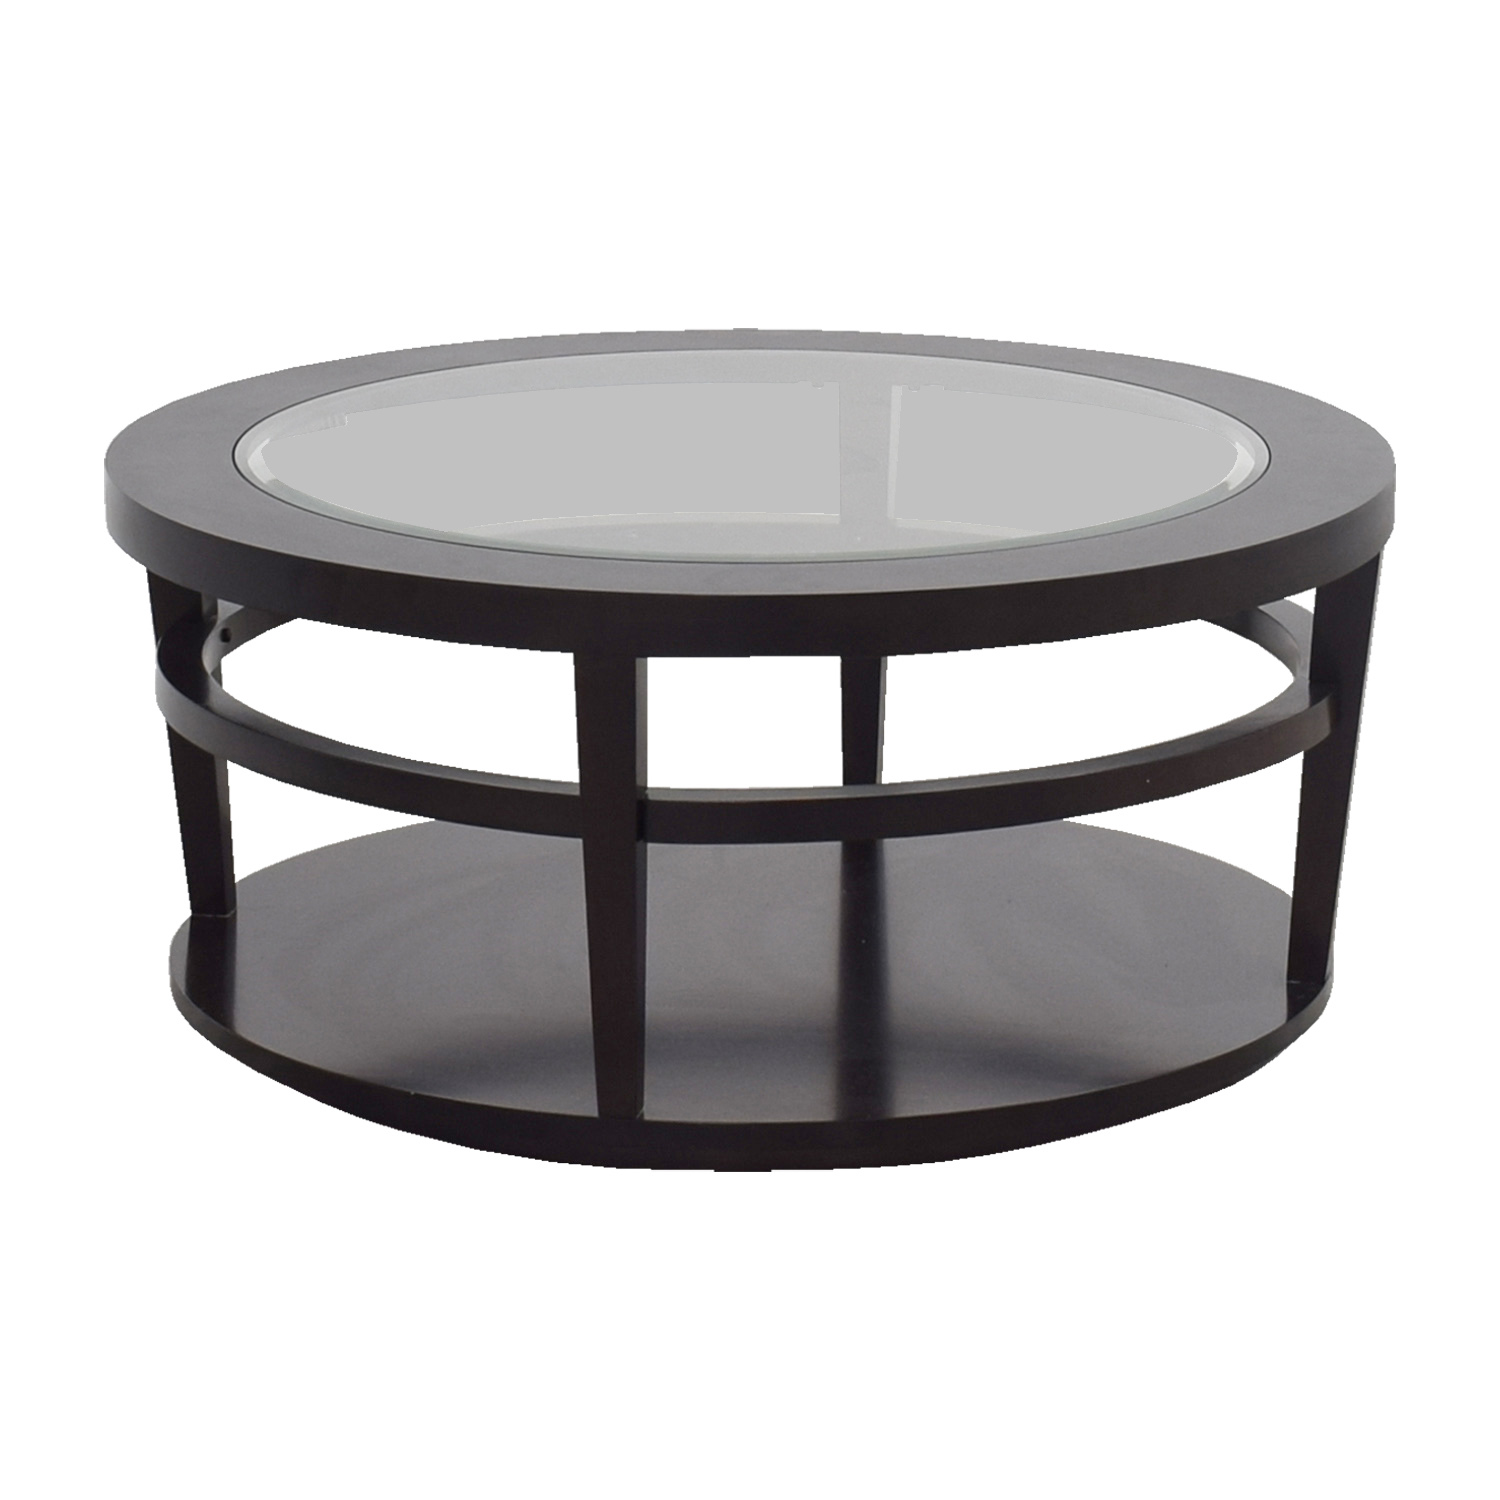 off macy avalon round glass and wood coffee table macys second hand accent great furniture speed trestle base pier imports green painted end tables nesting outdoor side cover